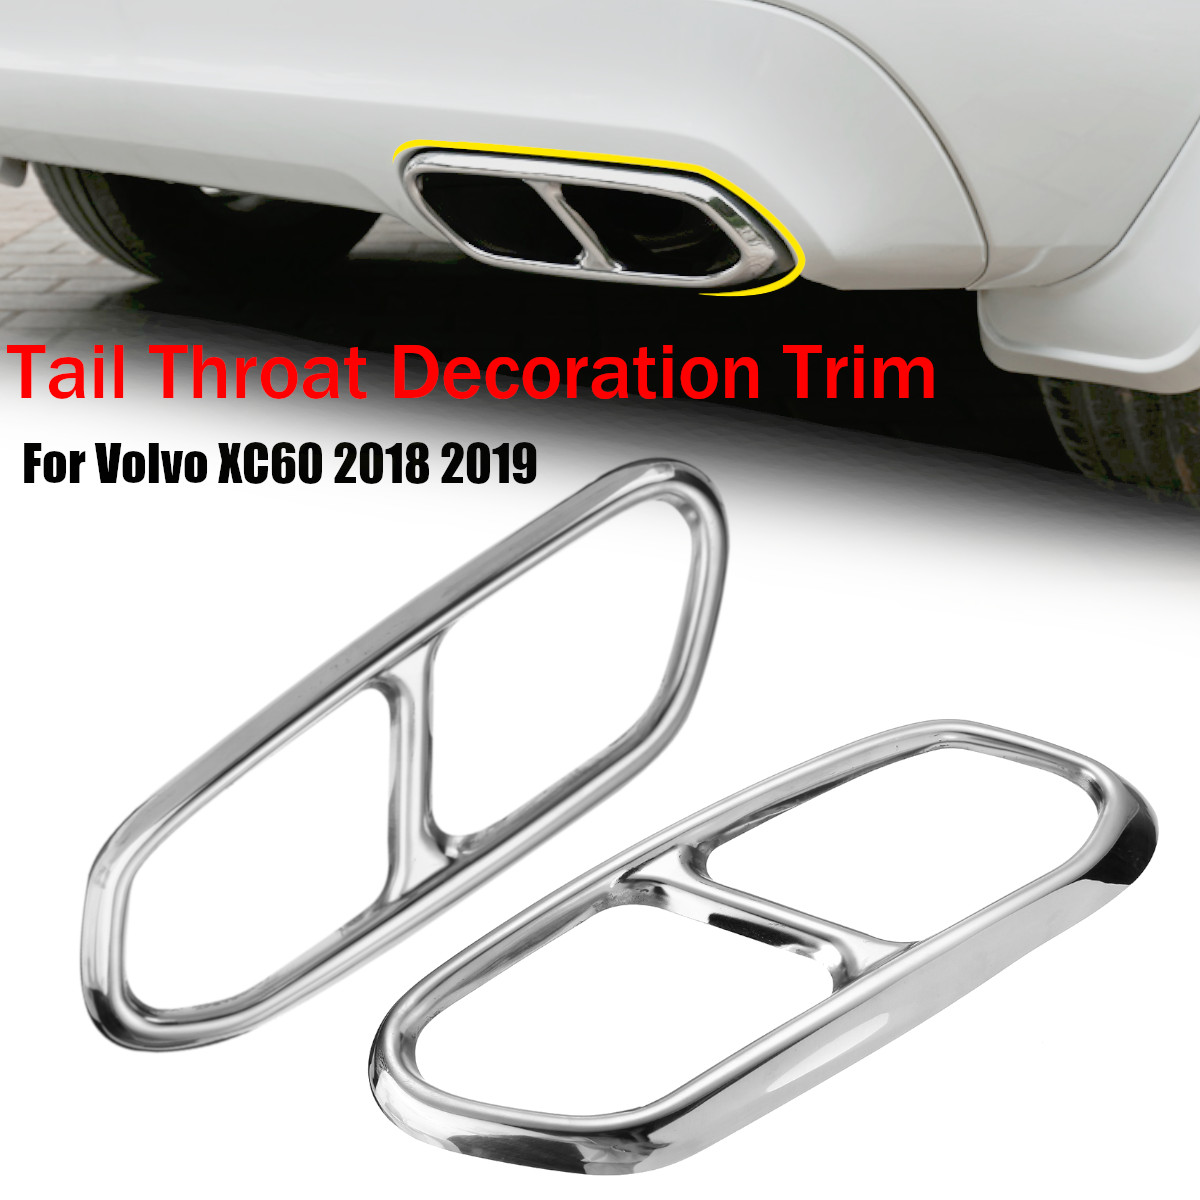 2X Car Rear Exhaust Pipe Decoration Muffler Tail Throat Cover Cap Sticker For Volvo XC60 2018 2019-in Chromium Styling from Automobiles & Motorcycles